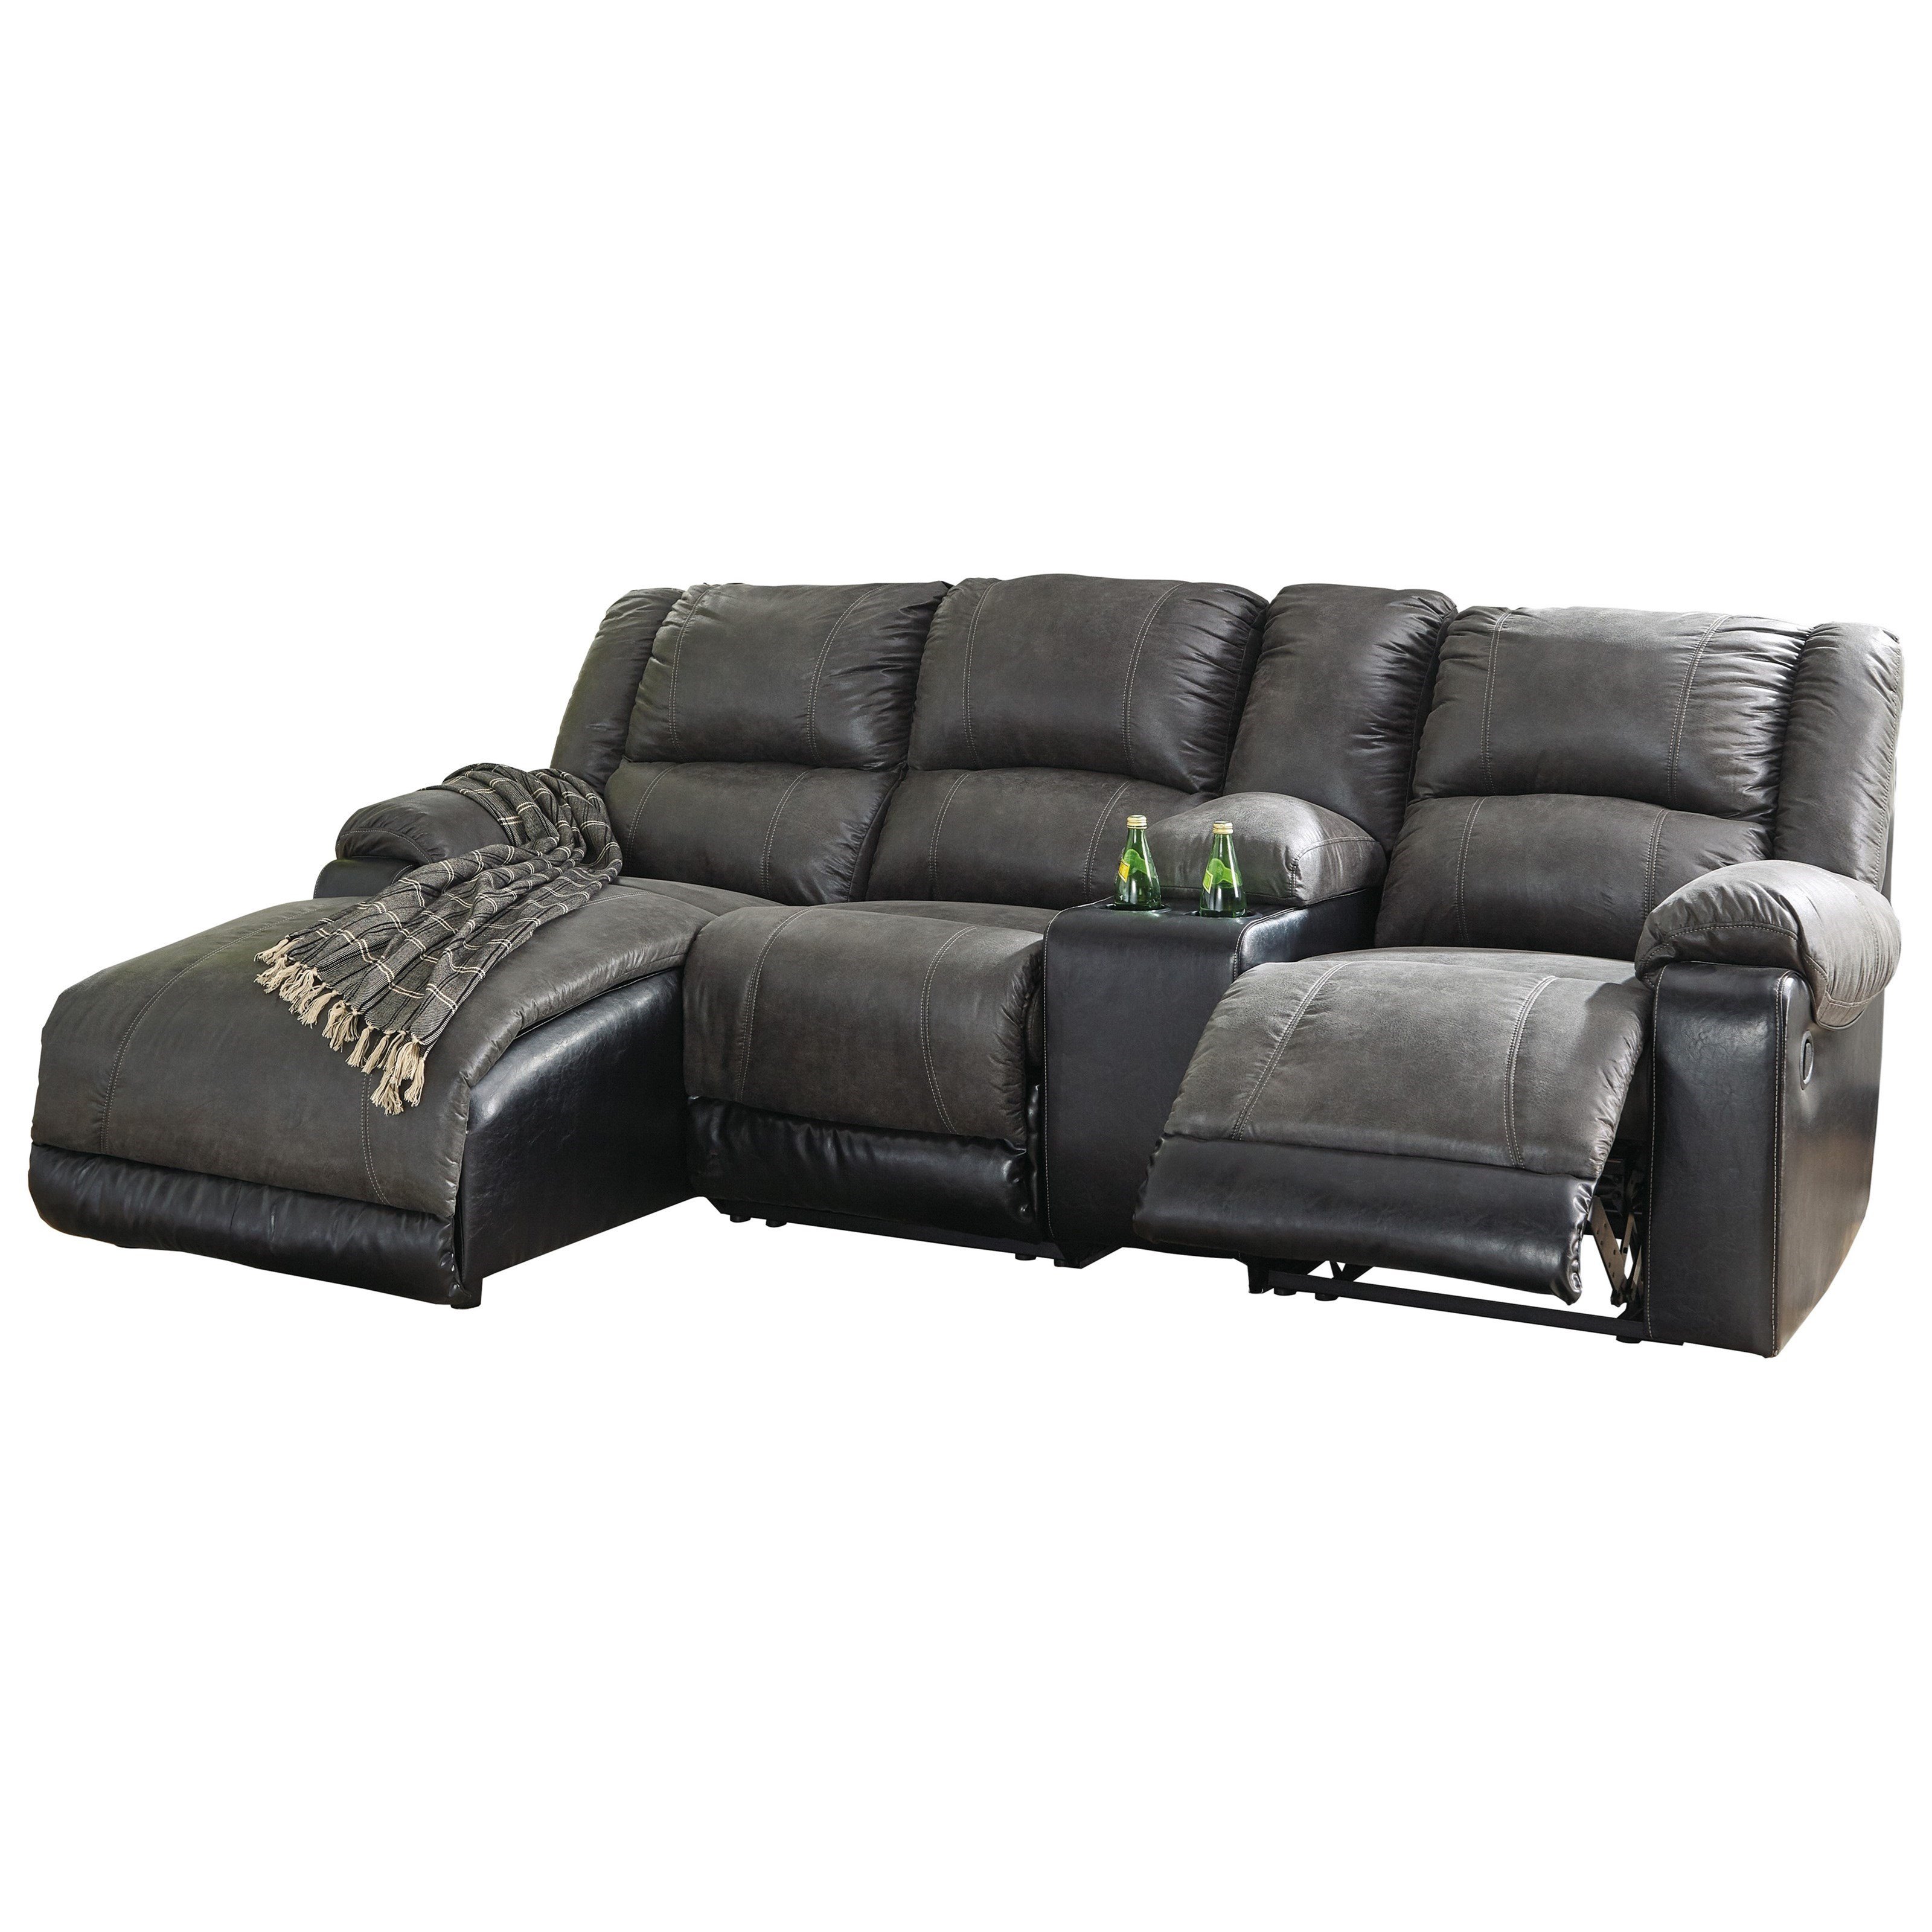 Nantahala Reclining Chaise Sofa With Storage Console By Signature Design Ashley At Royal Furniture